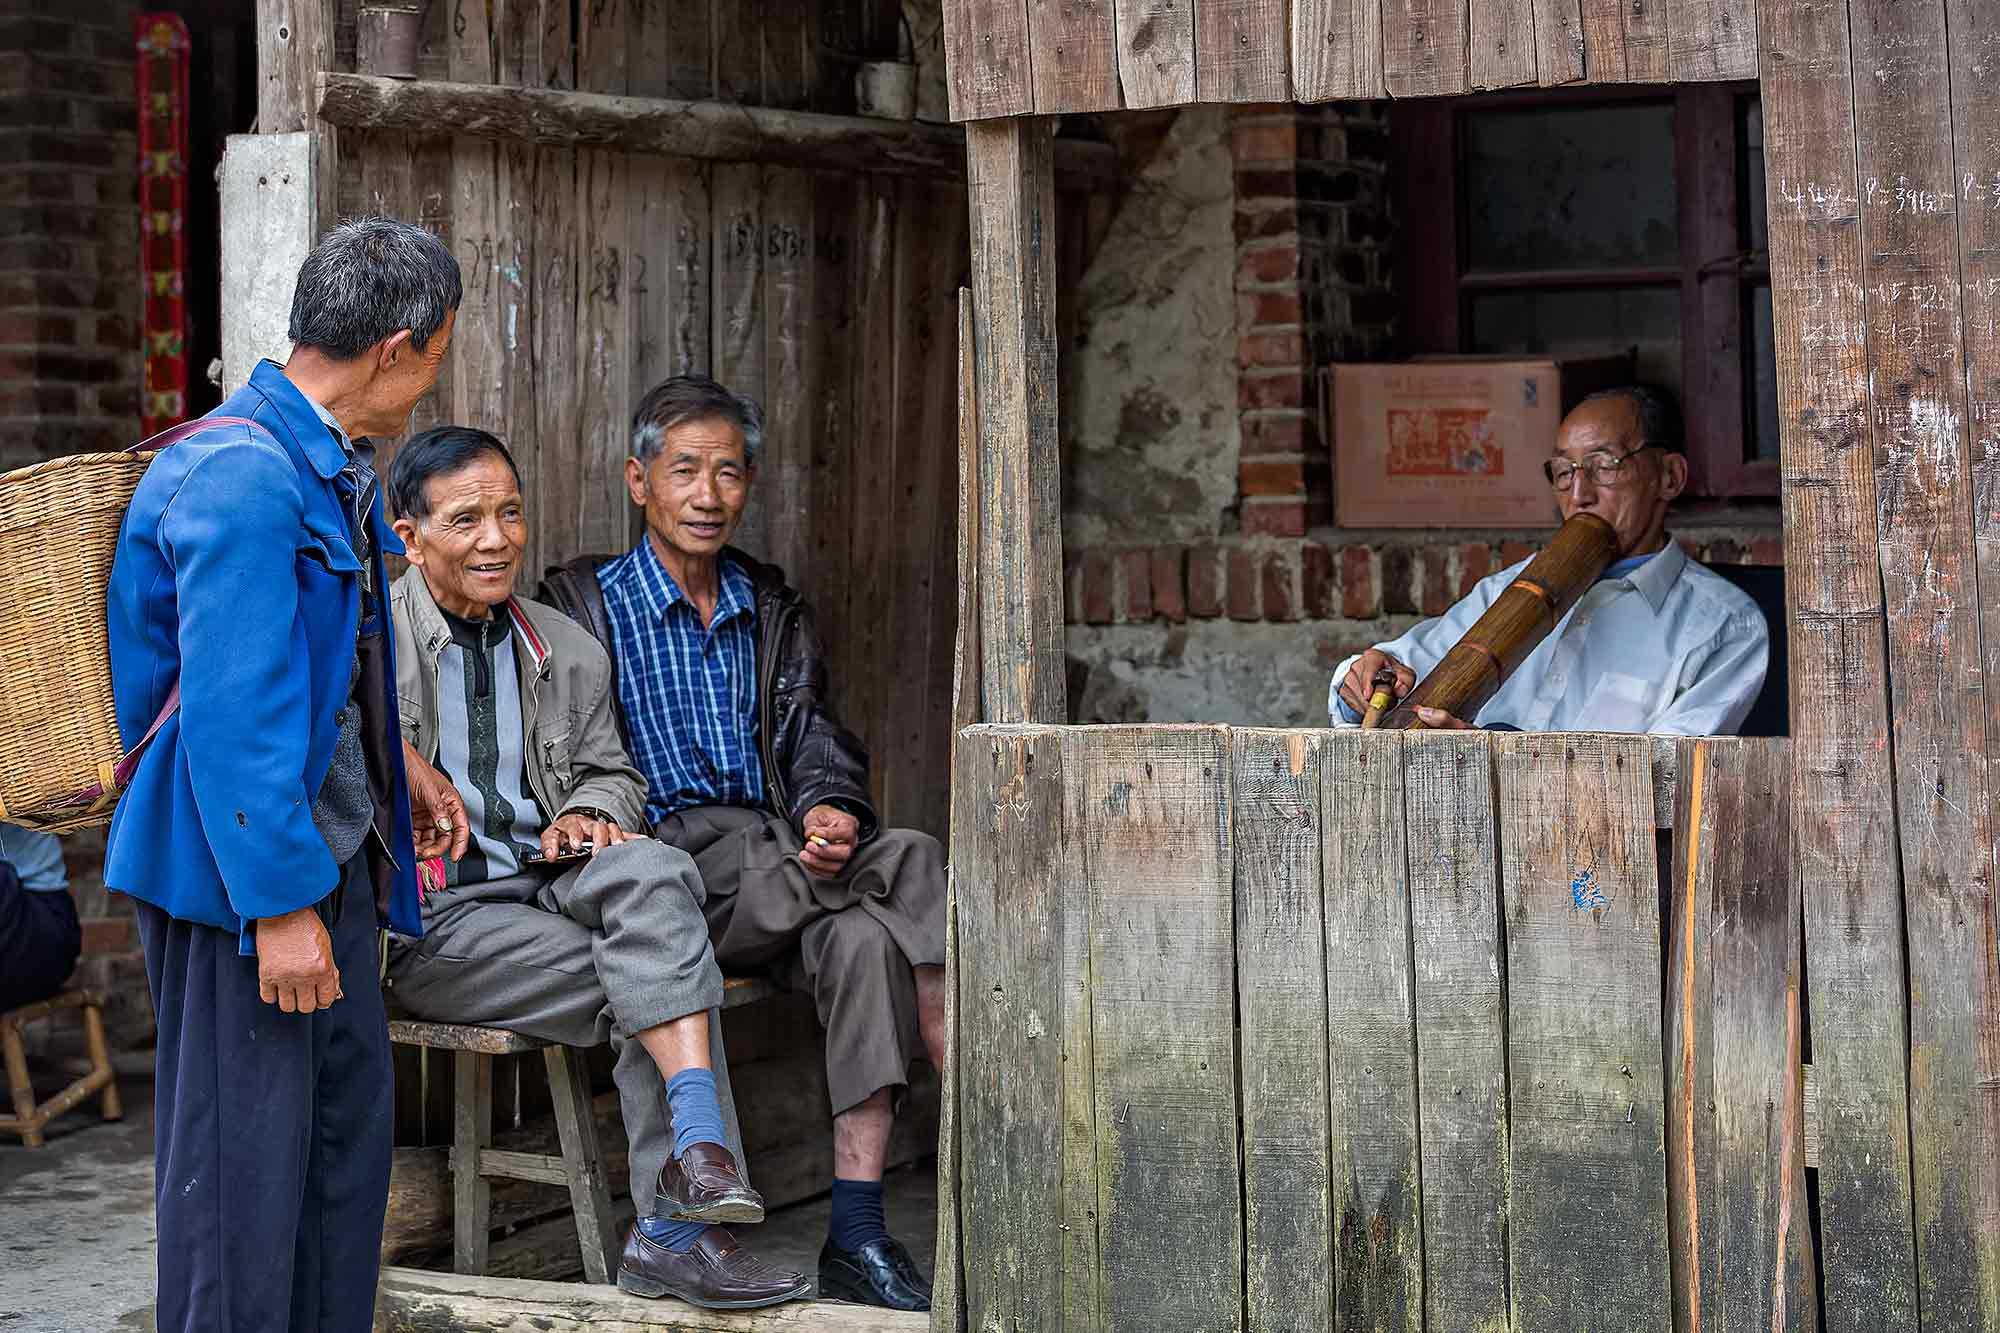 Men smoking a pipe in Xinjie, Yunnan. © Ulli Maier & Nisa Maier